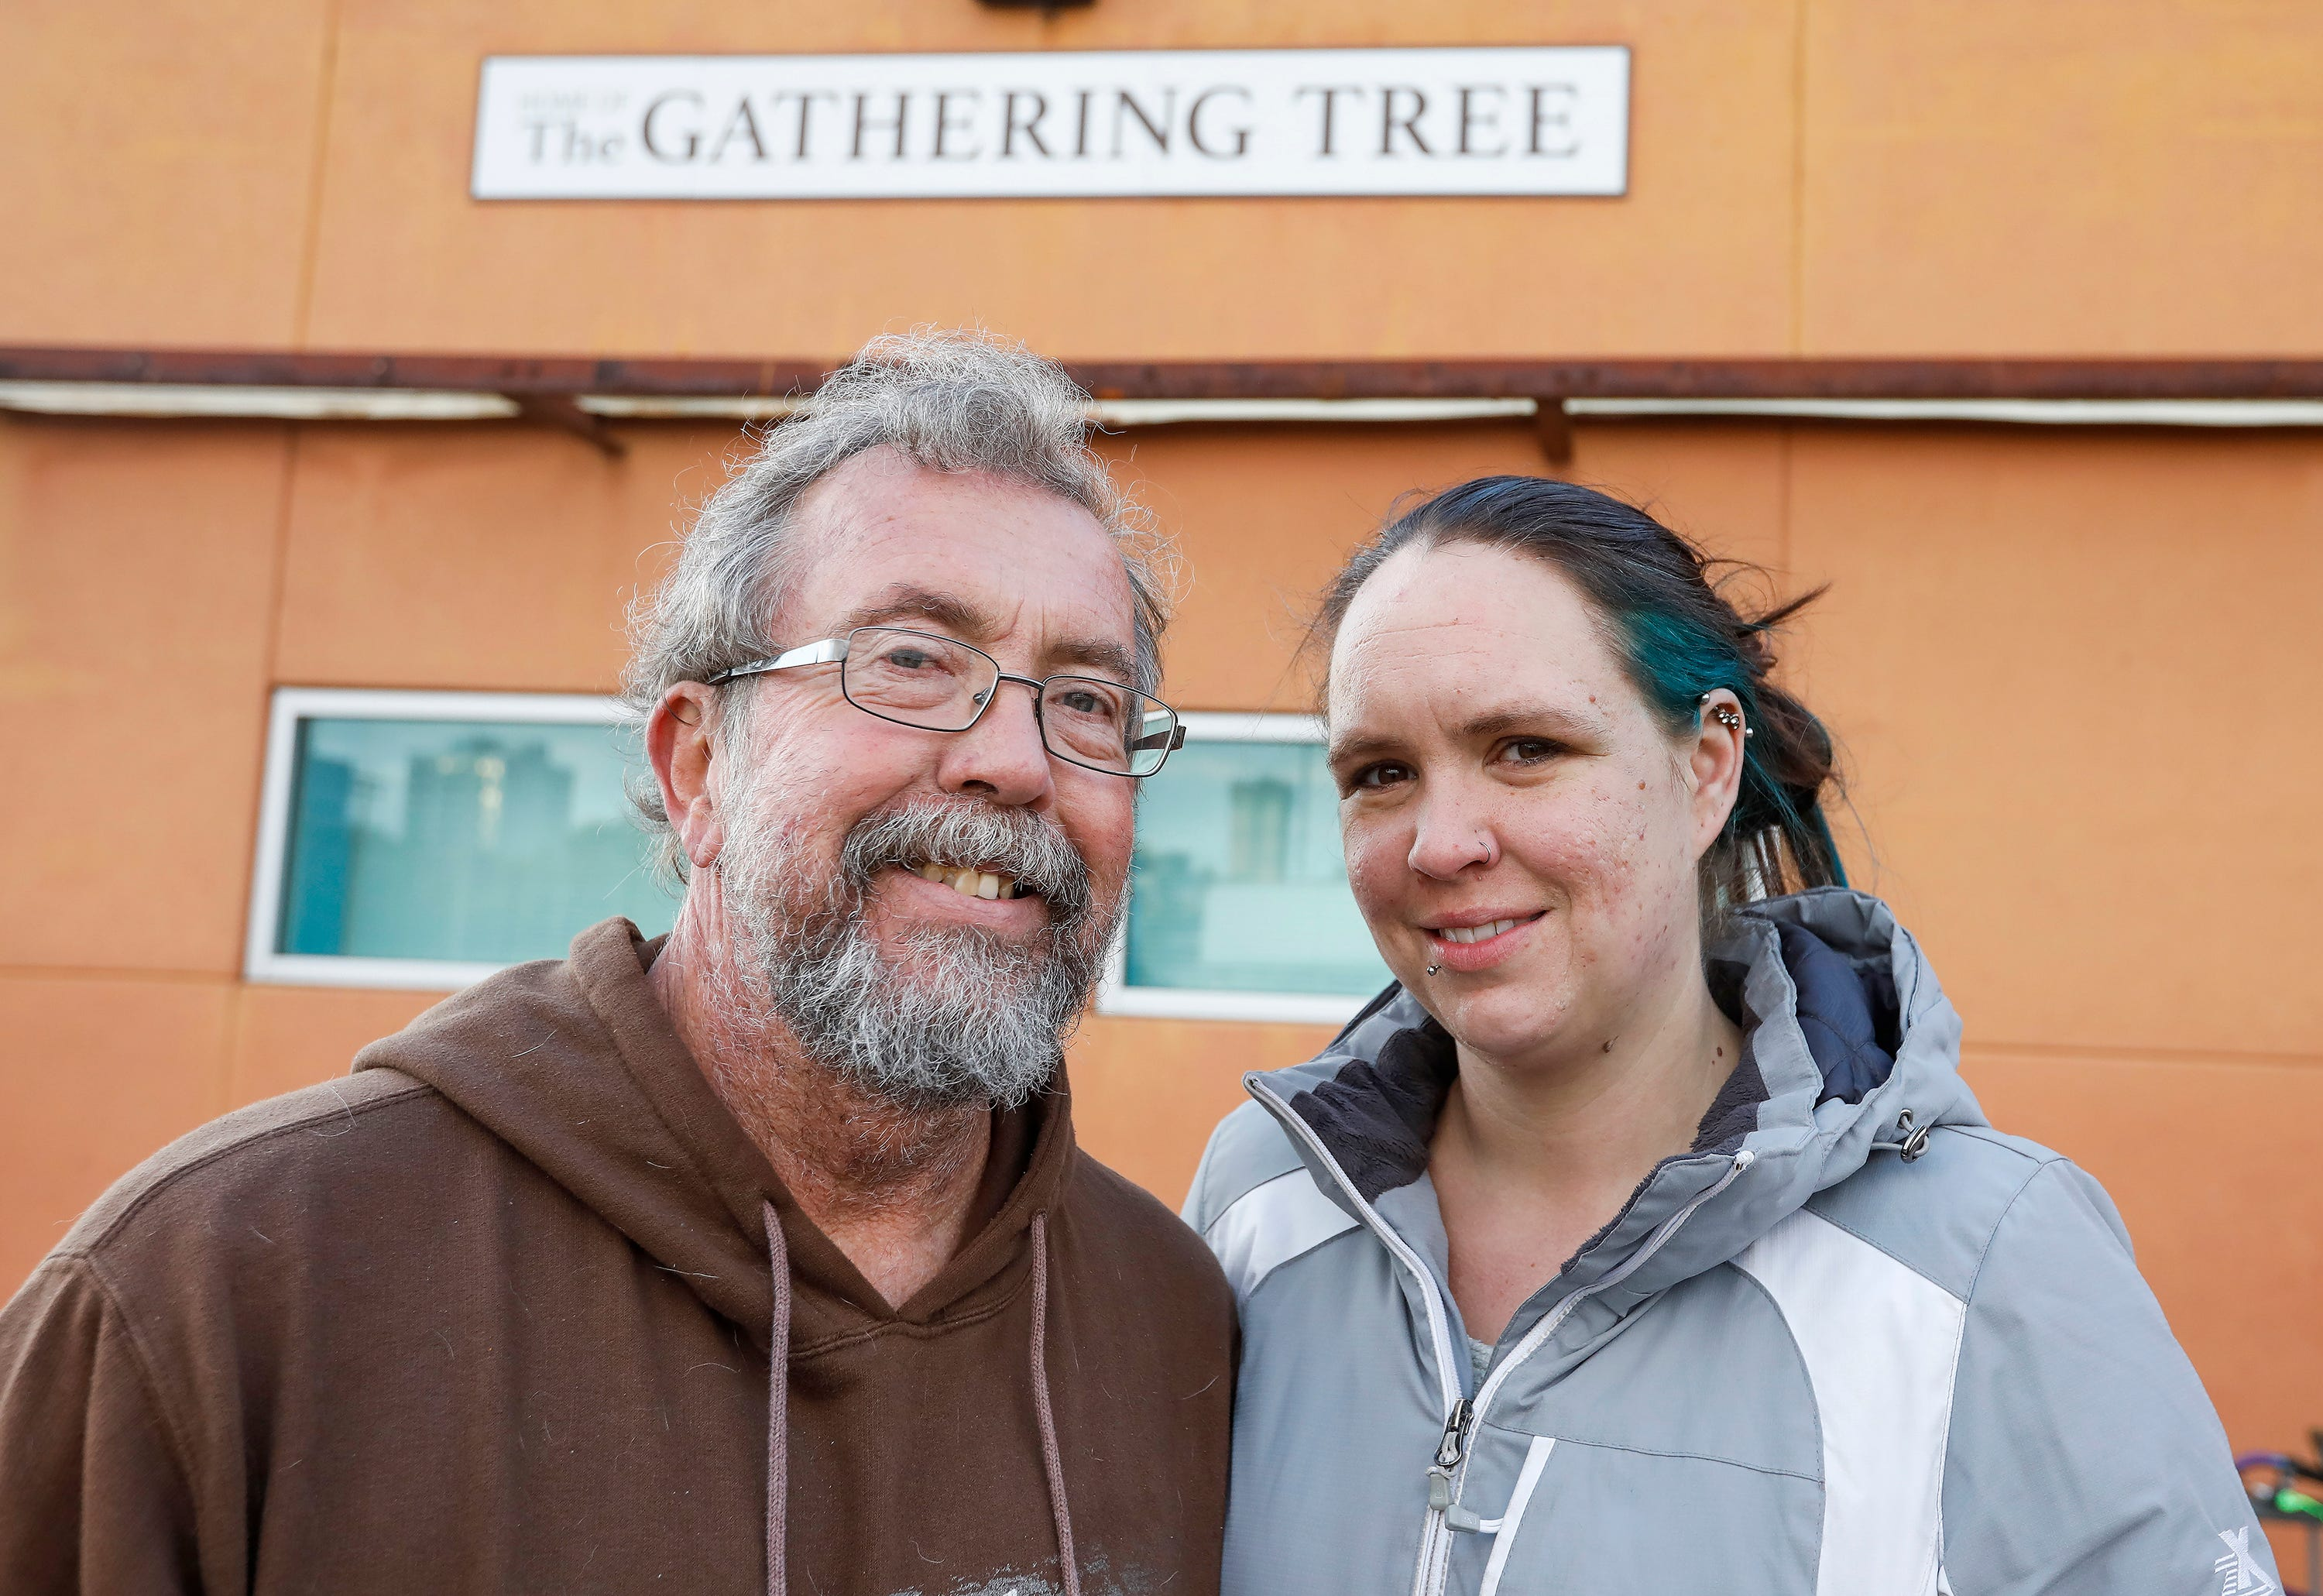 Ron Duncan and his fiancee, Erica Woolman. who are longtime volunteers,  stand outside of The Gathering Tree on Friday, Nov. 2, 2018. The drop-in center, which opened in 2016, has closed.